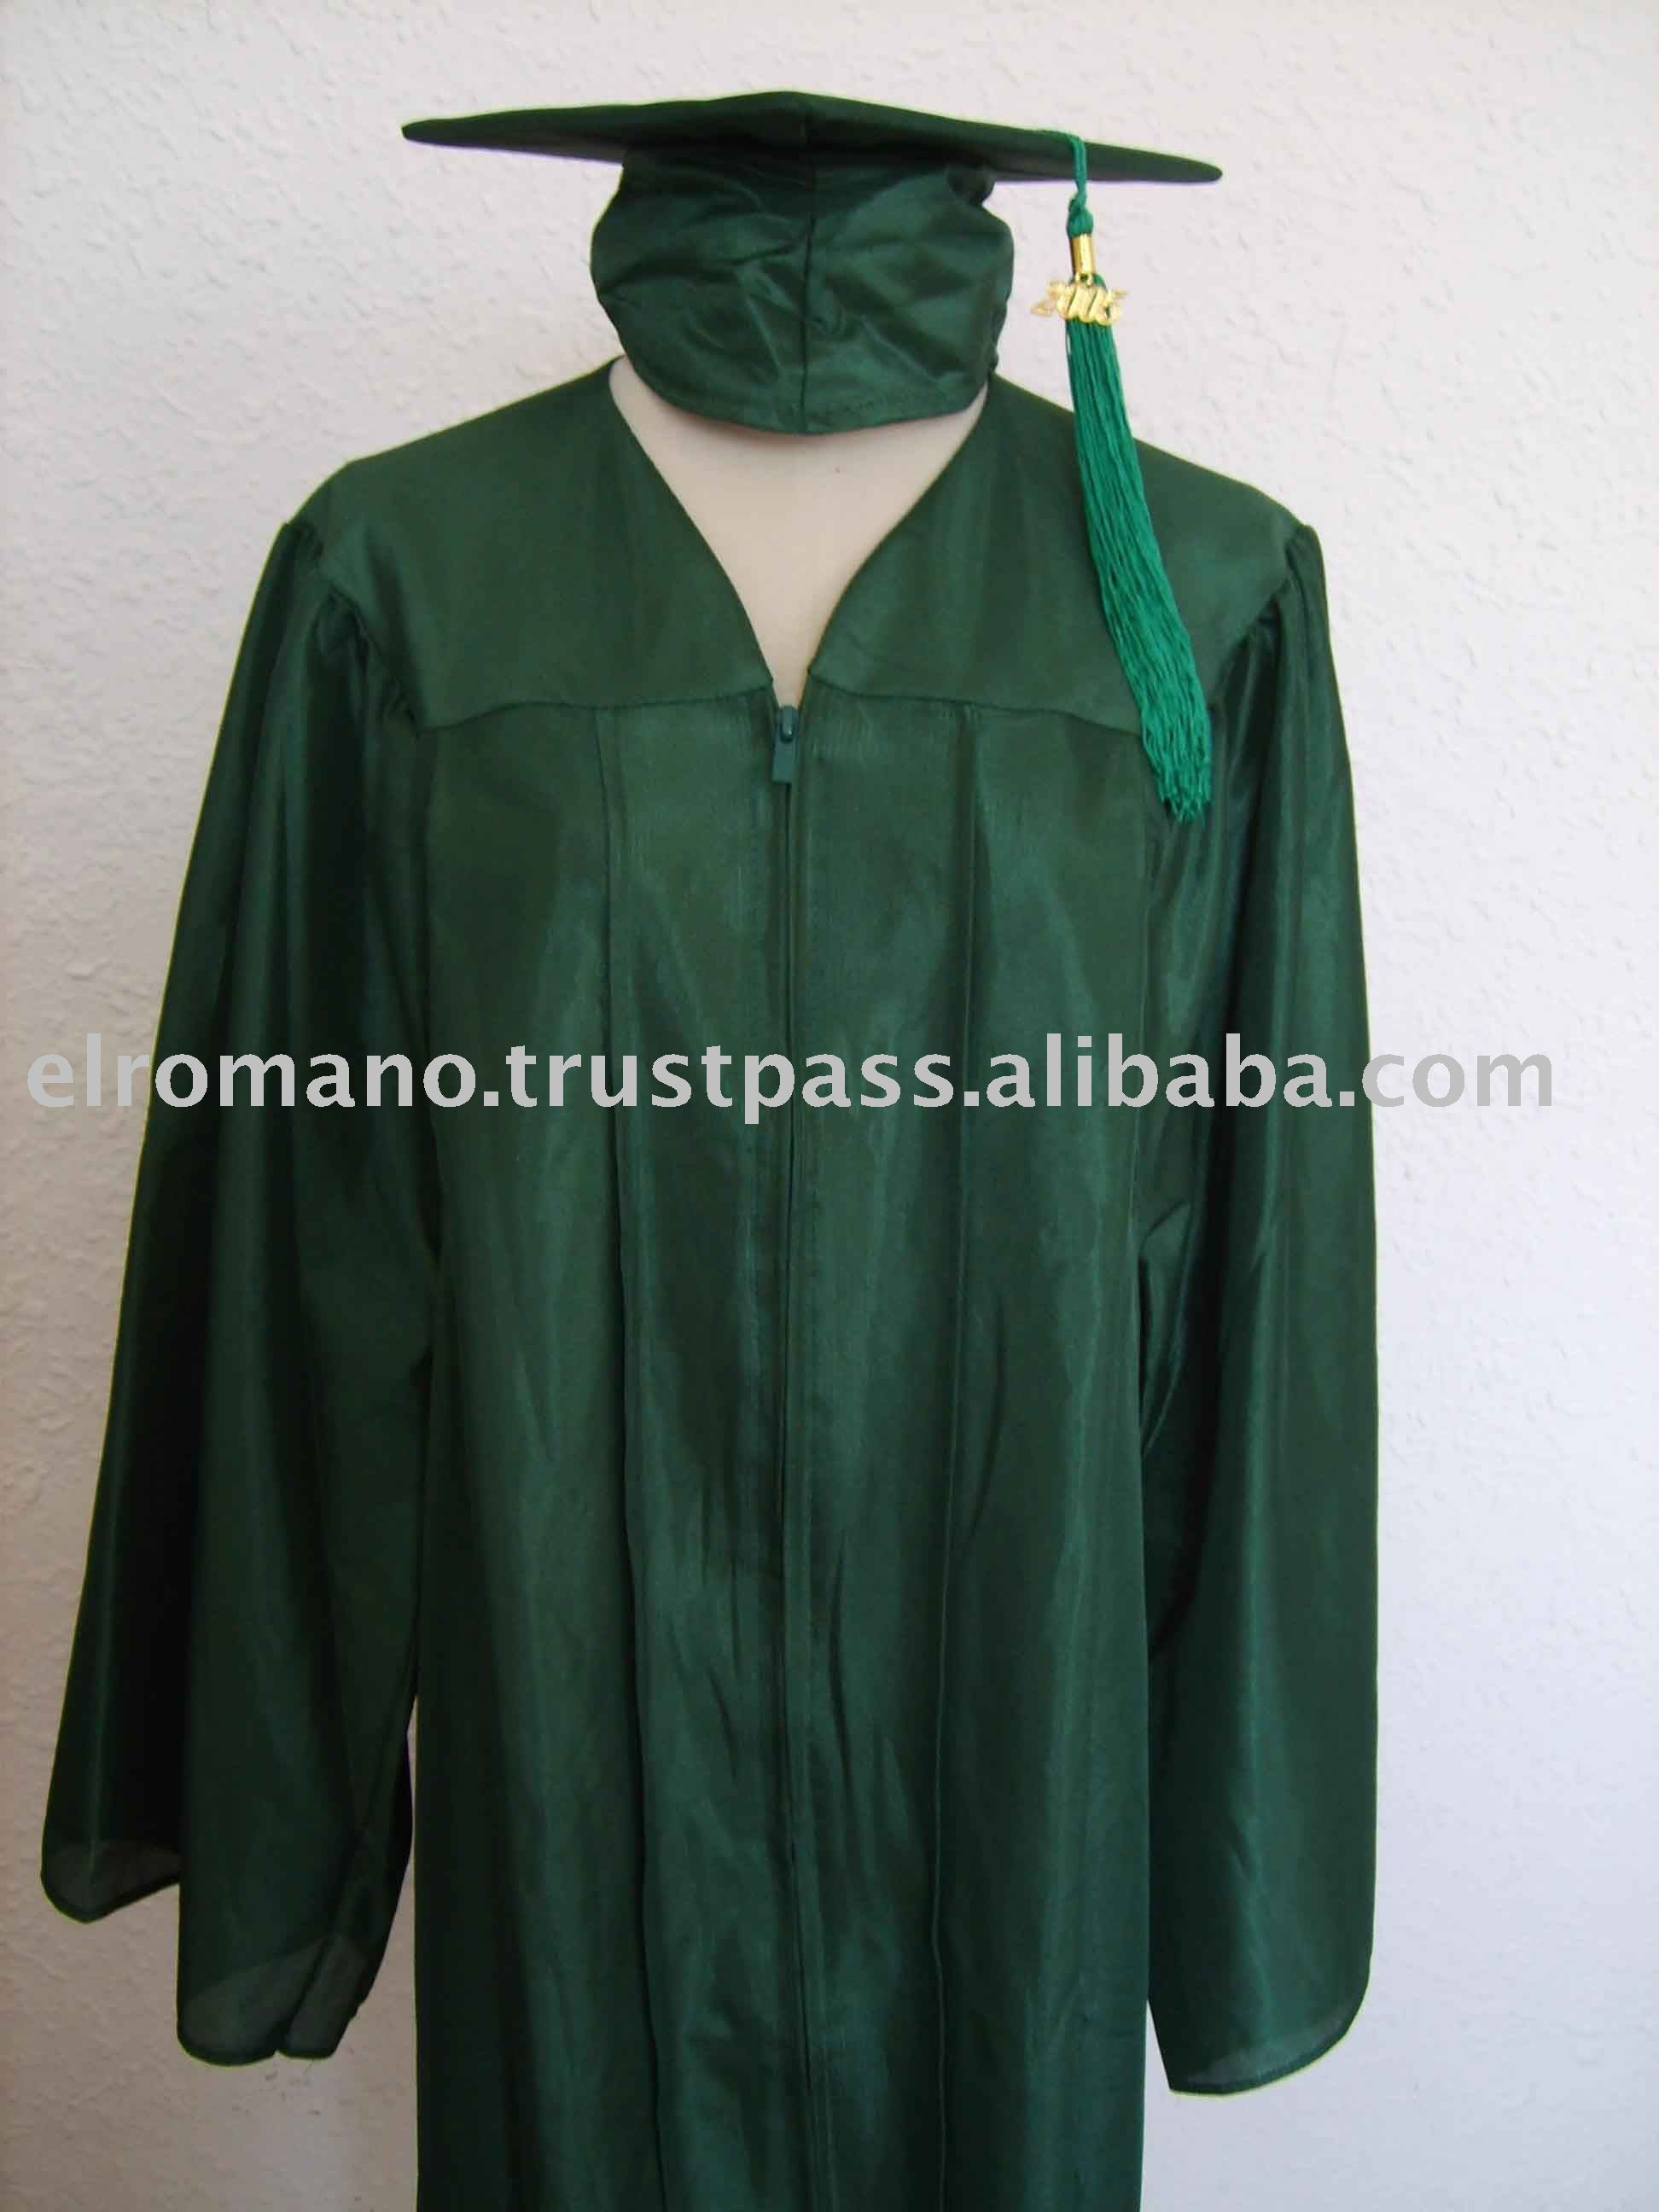 High School Graduation Gown - Buy Graduation Gown Product on Alibaba.com